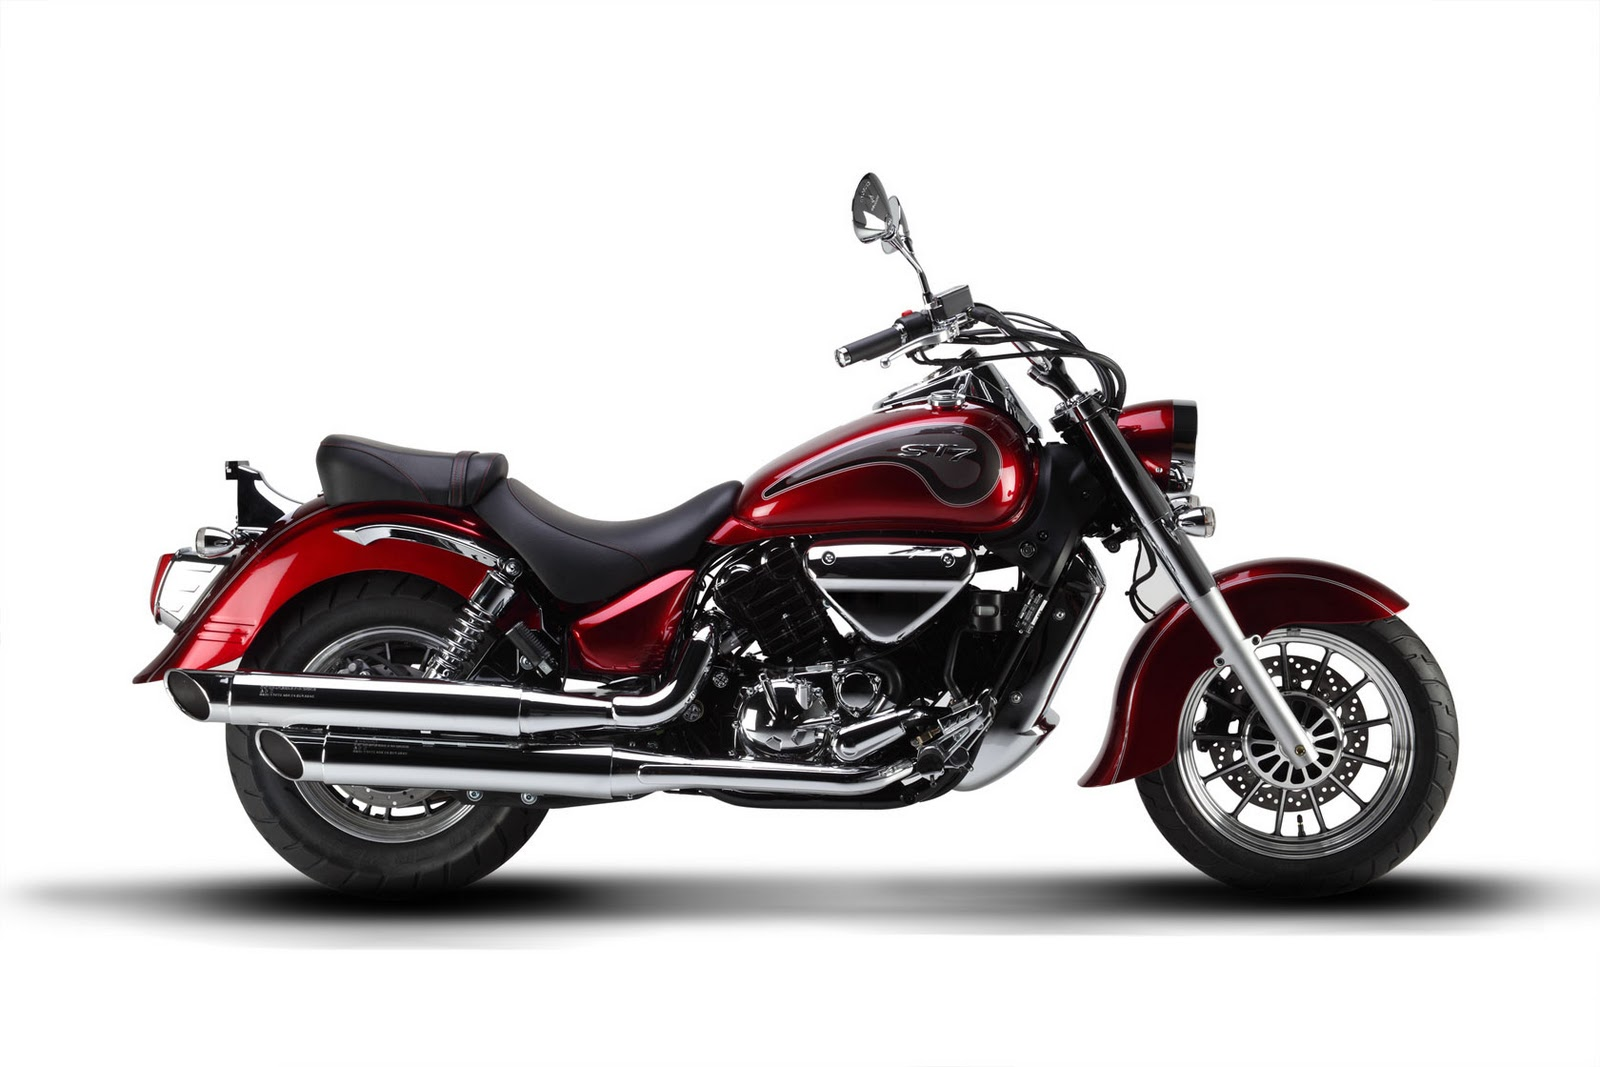 Top 10 Affordable New Models Of 2016 - Motorcycle.com